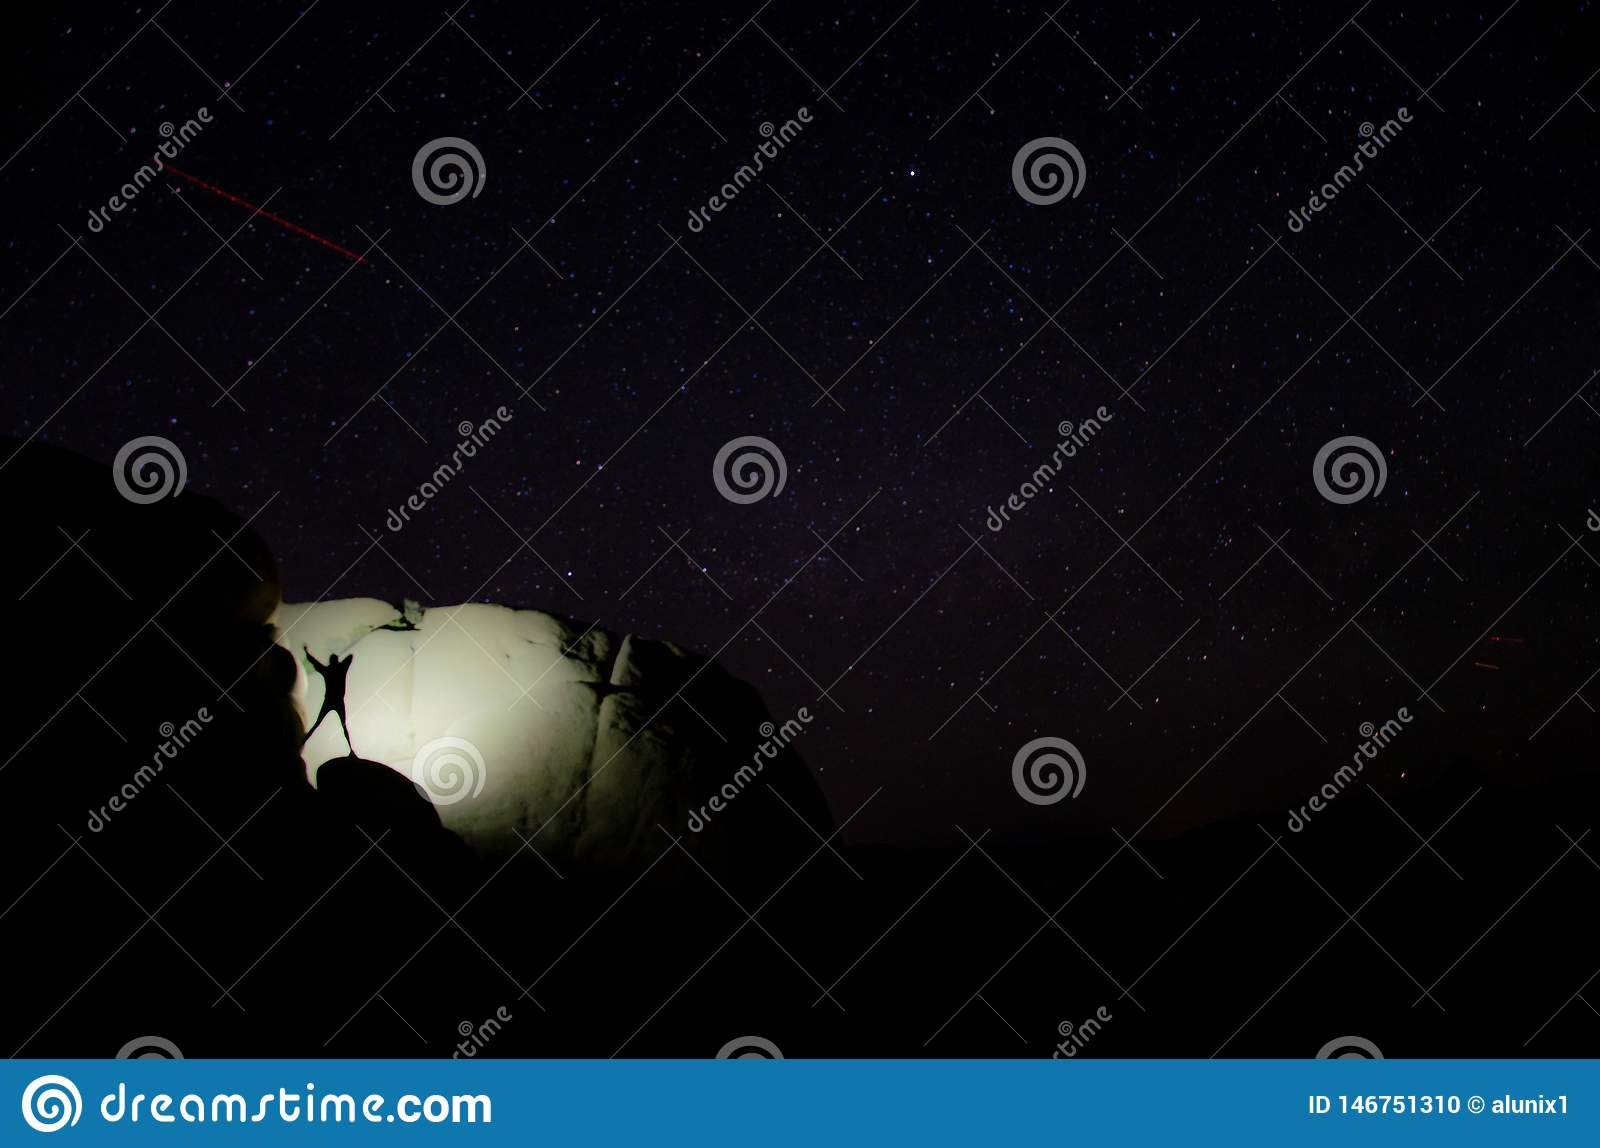 Girl dancing on a rock at night